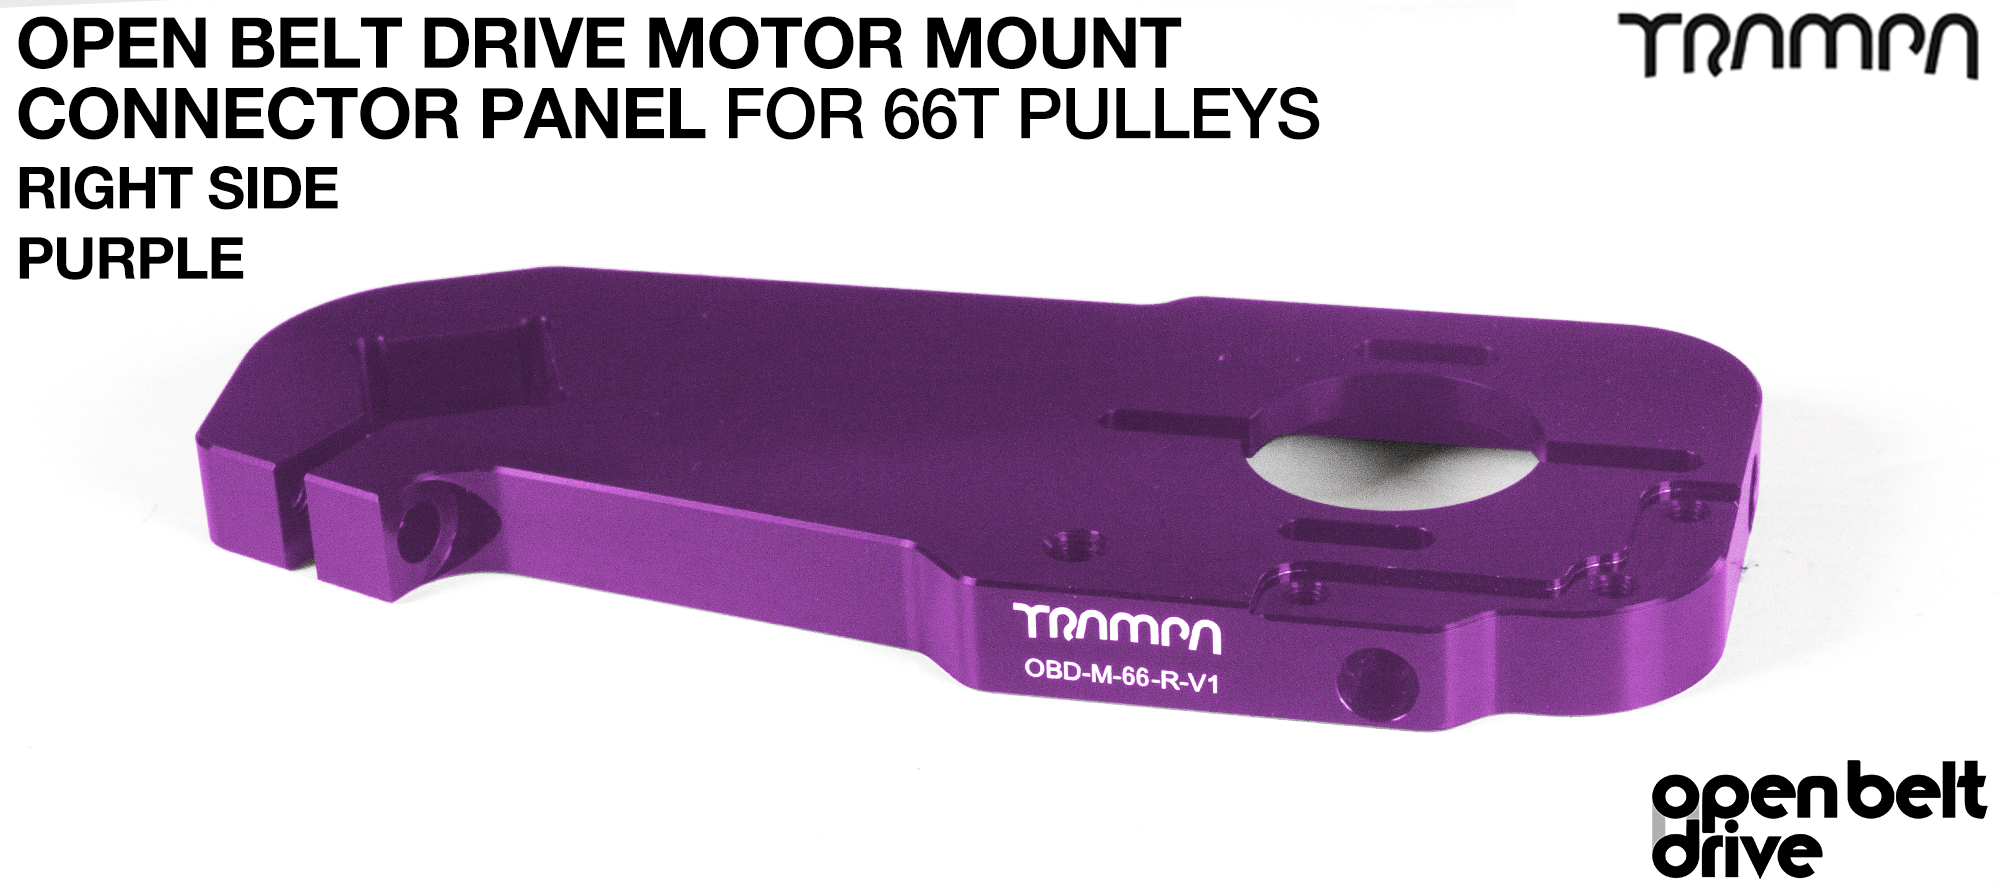 OBD Open Belt Drive Motor Mount Connector Panel for 66 tooth Pulleys - GOOFY - PURPLE